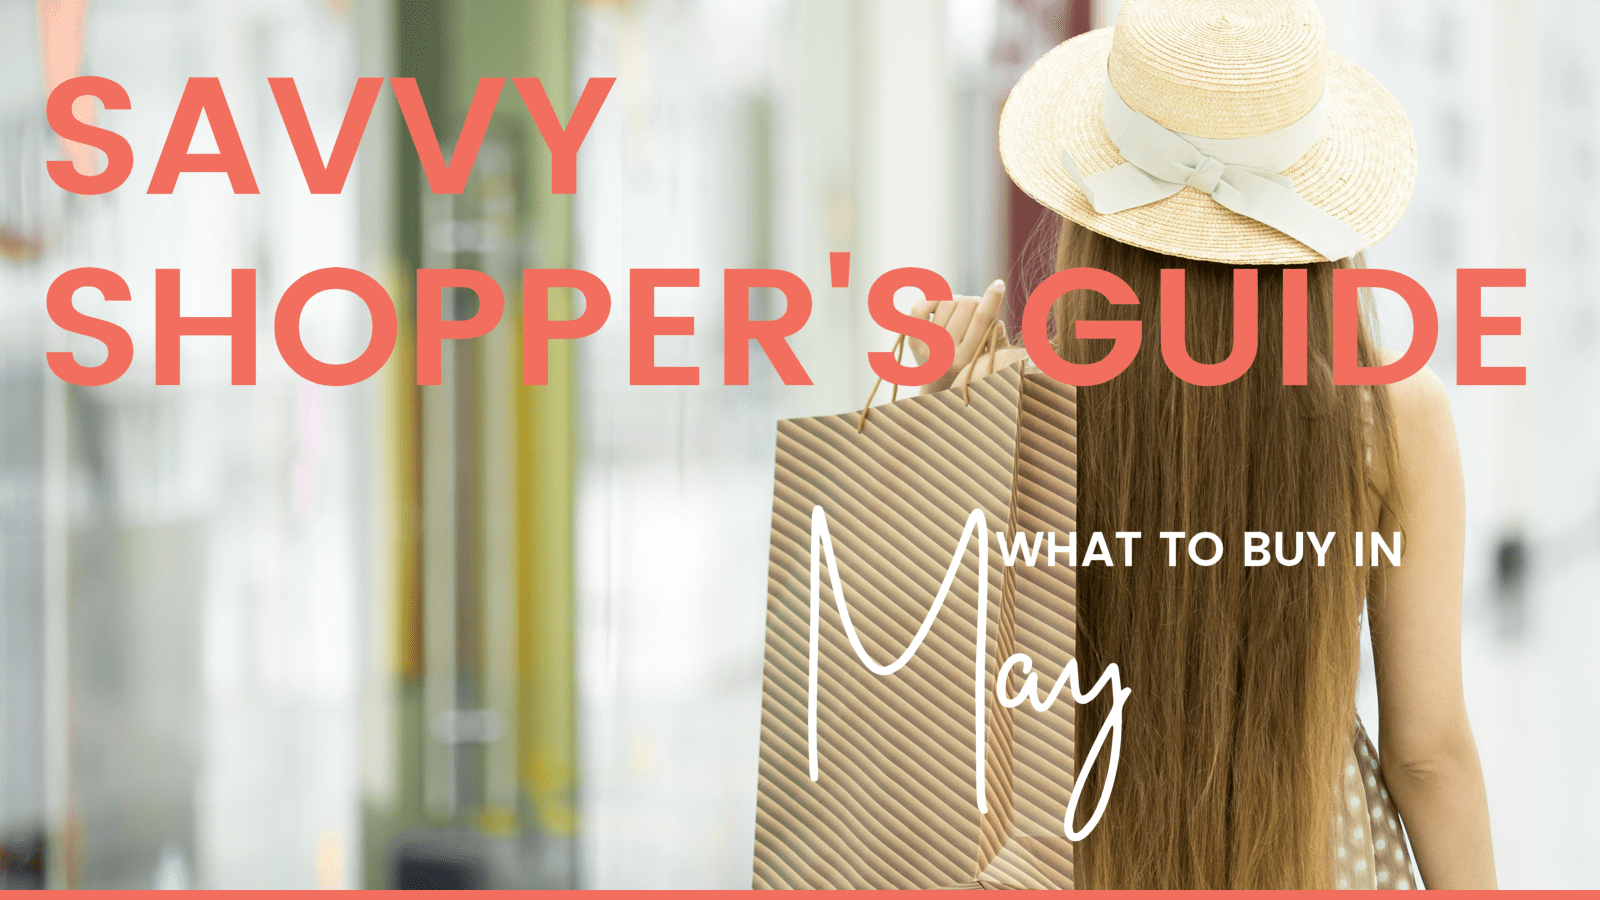 Savvy Shopper's Guide - What to Buy in May